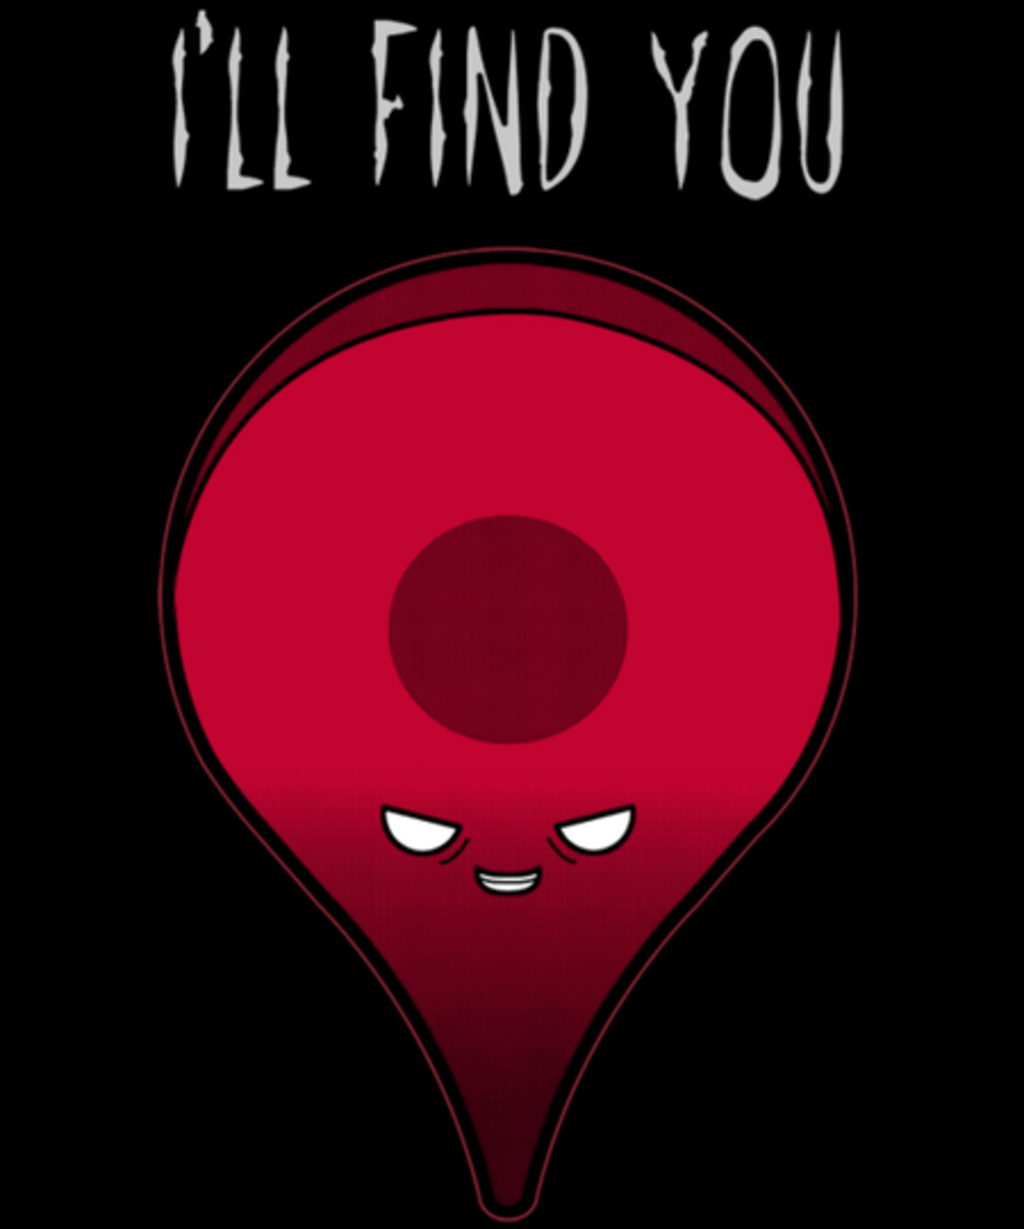 Qwertee: I'll find you!